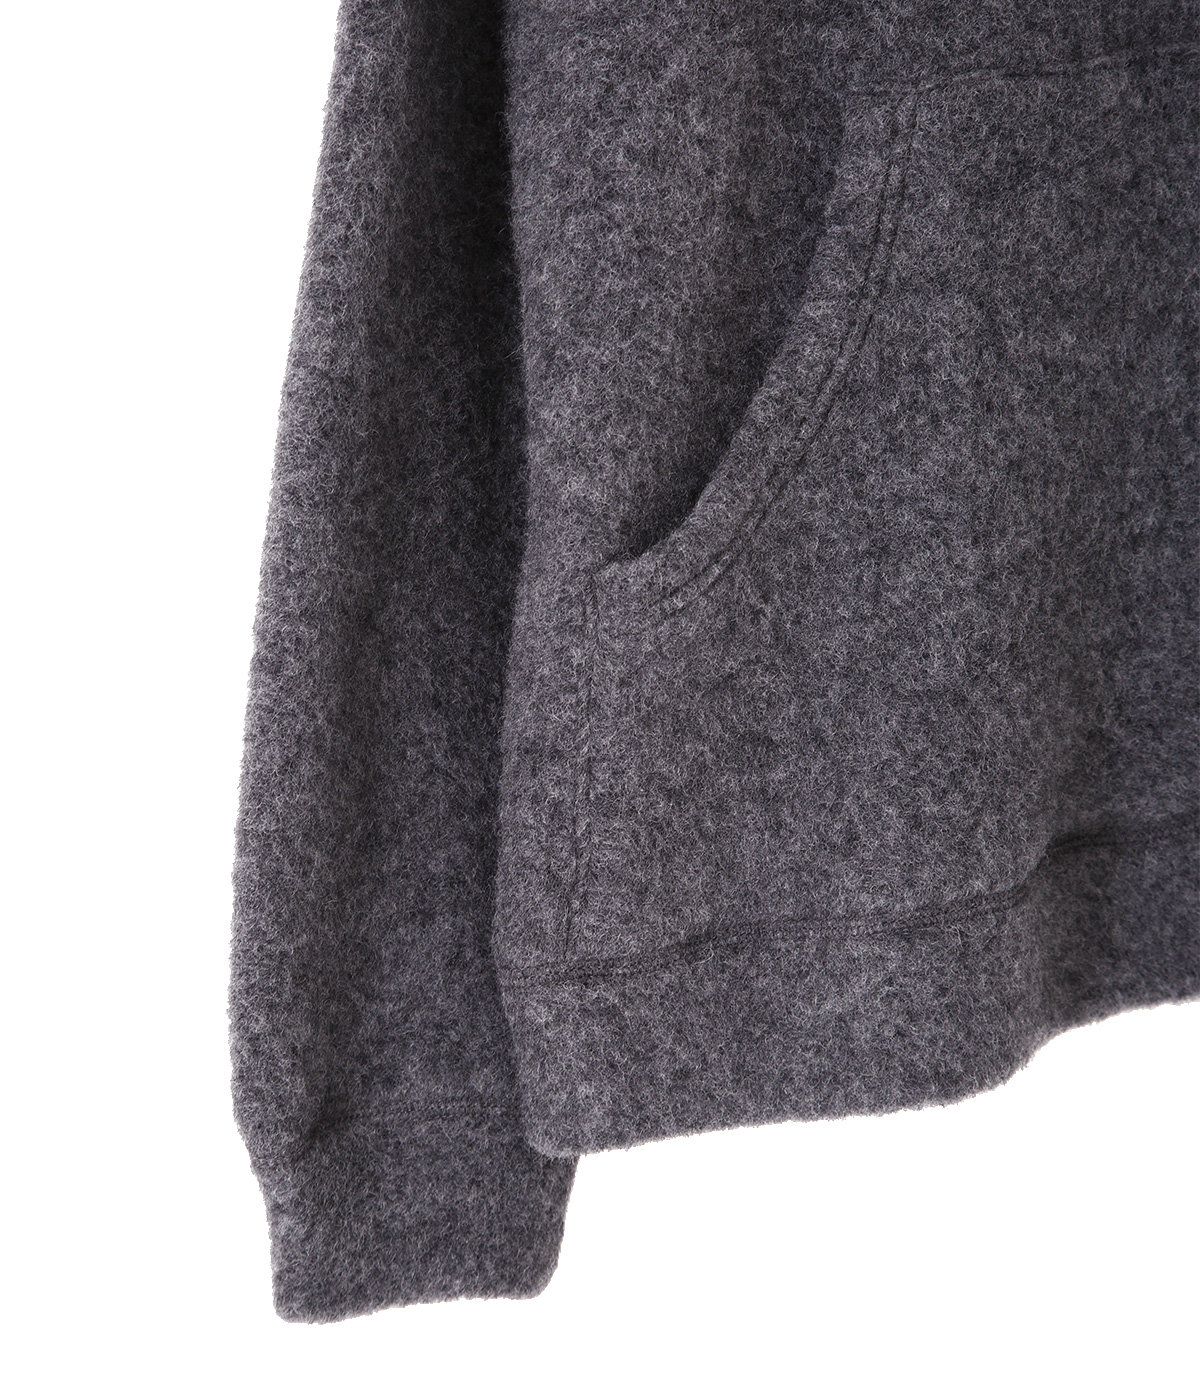 【予約】BOUCLE WOOL KNIT BIG POCKET CREW NECK